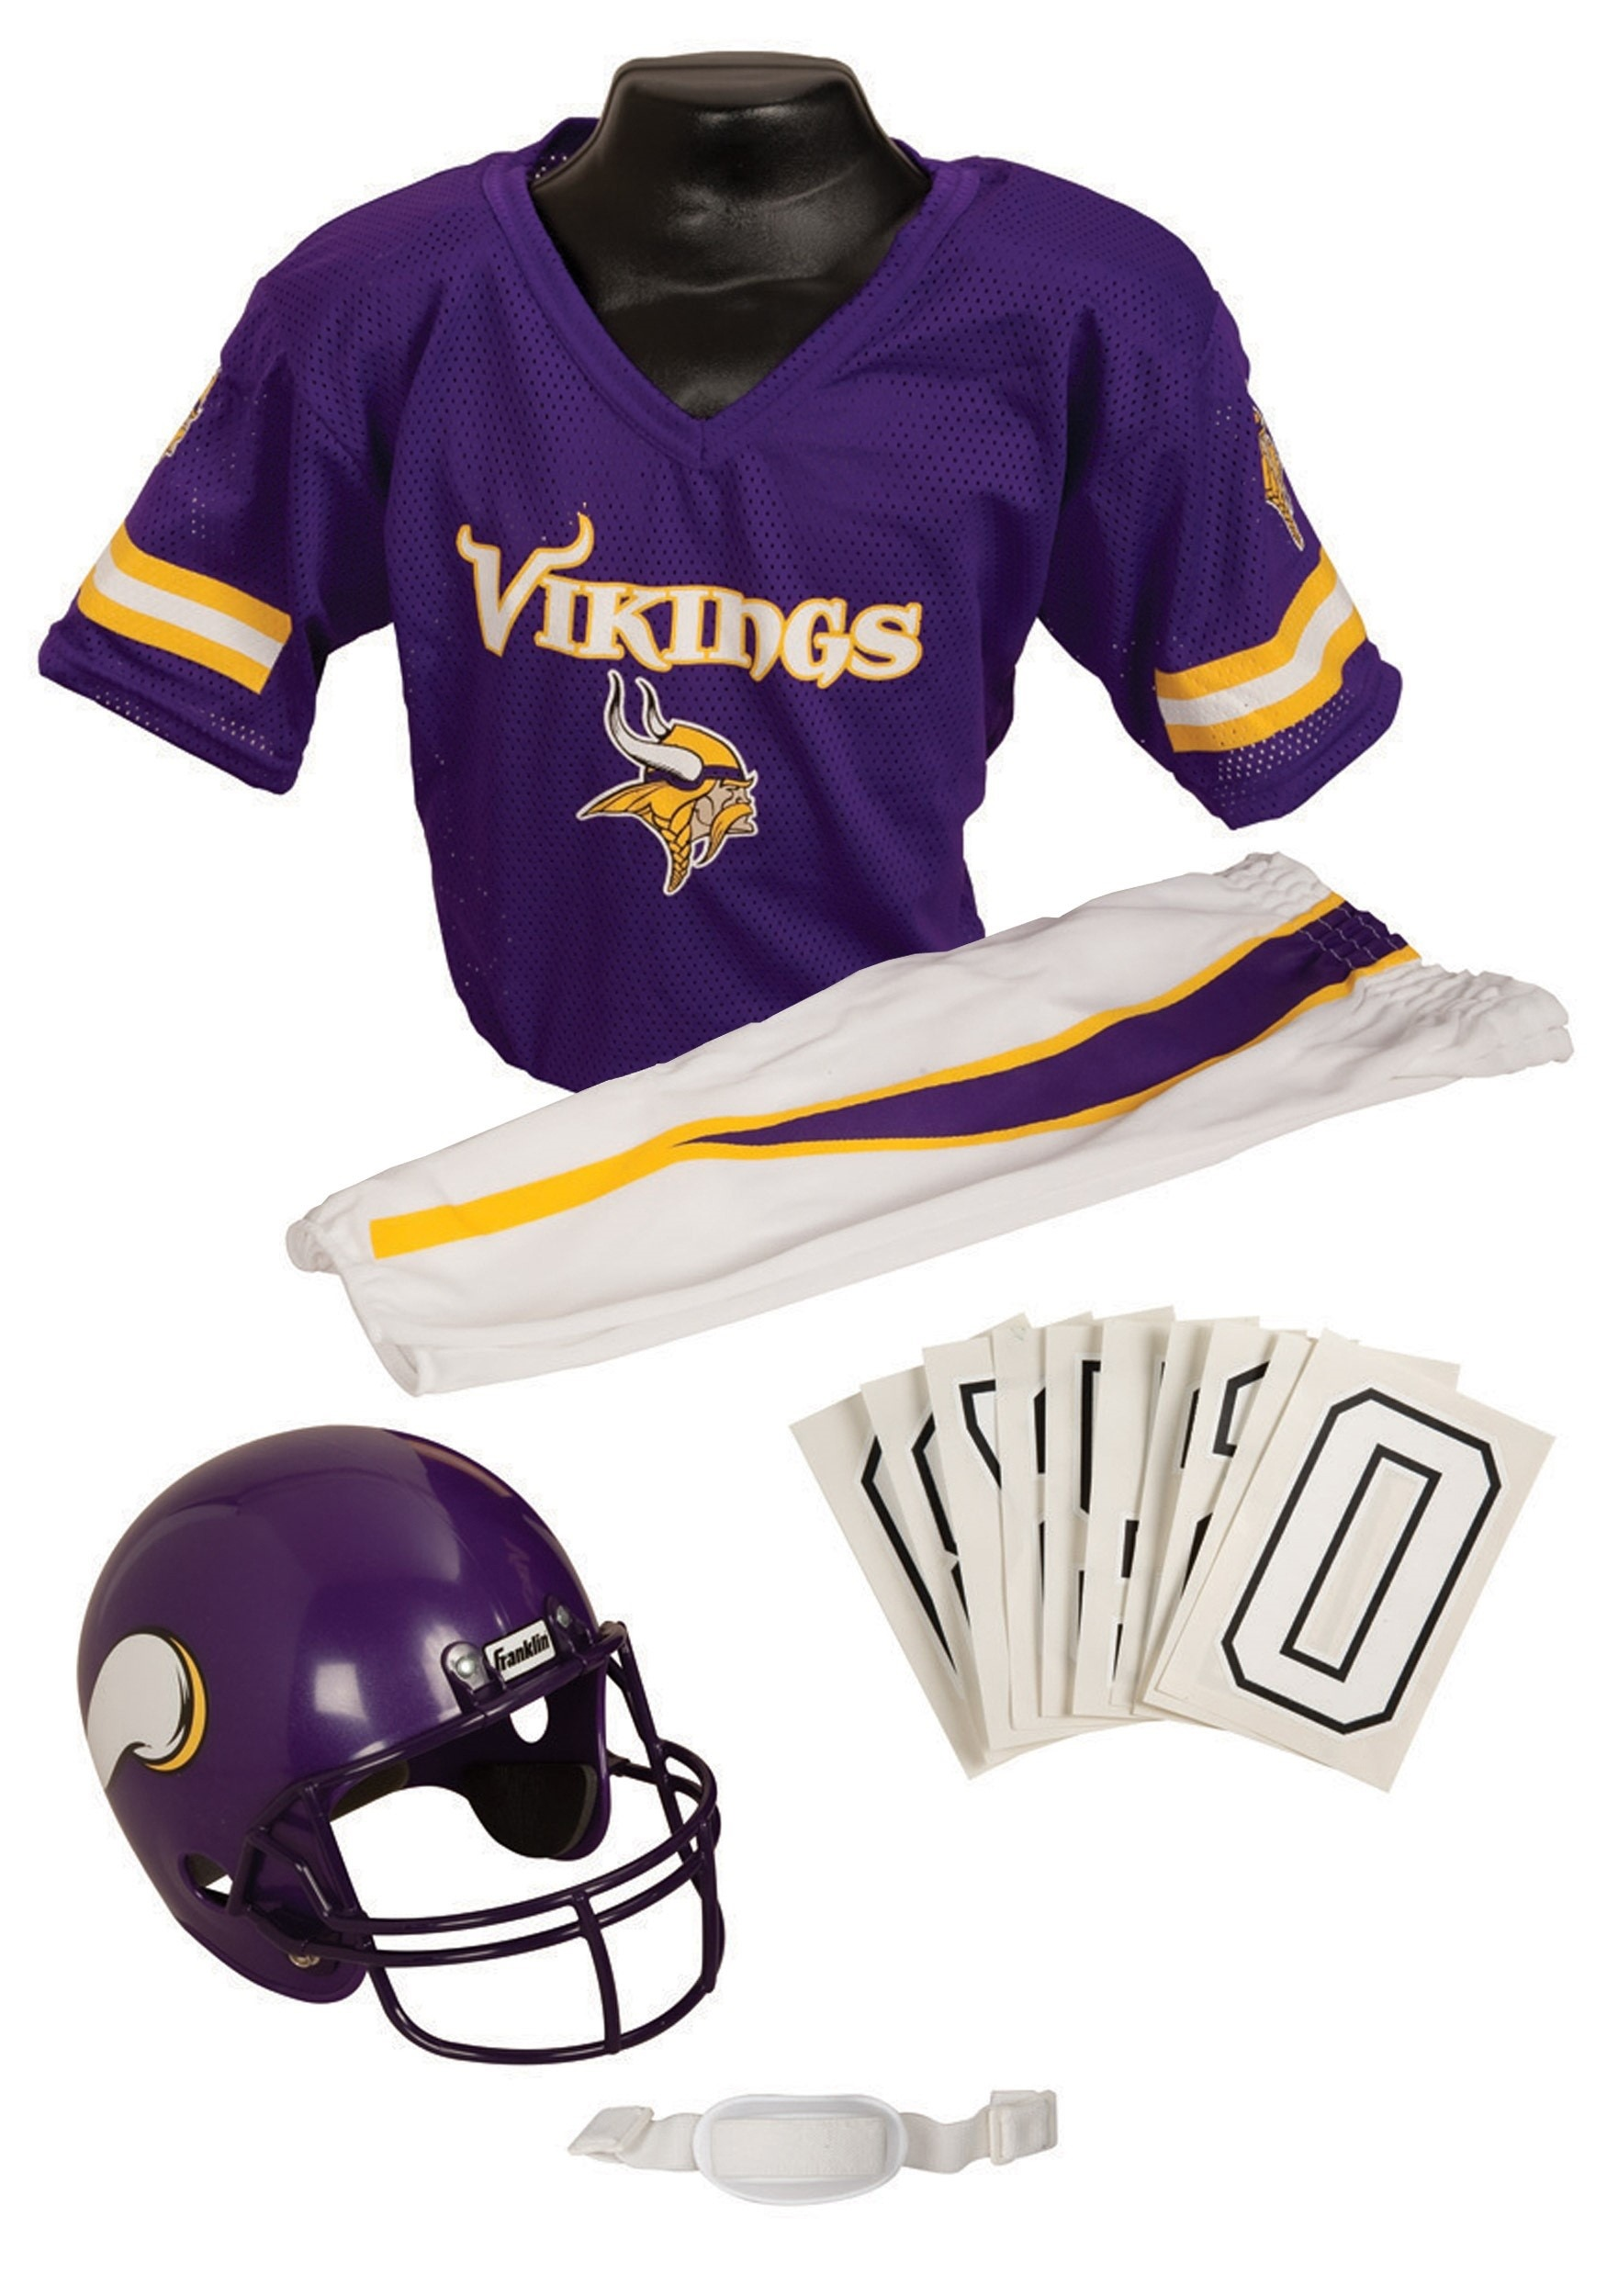 Vikings NFL Uniform Set FA15700F07